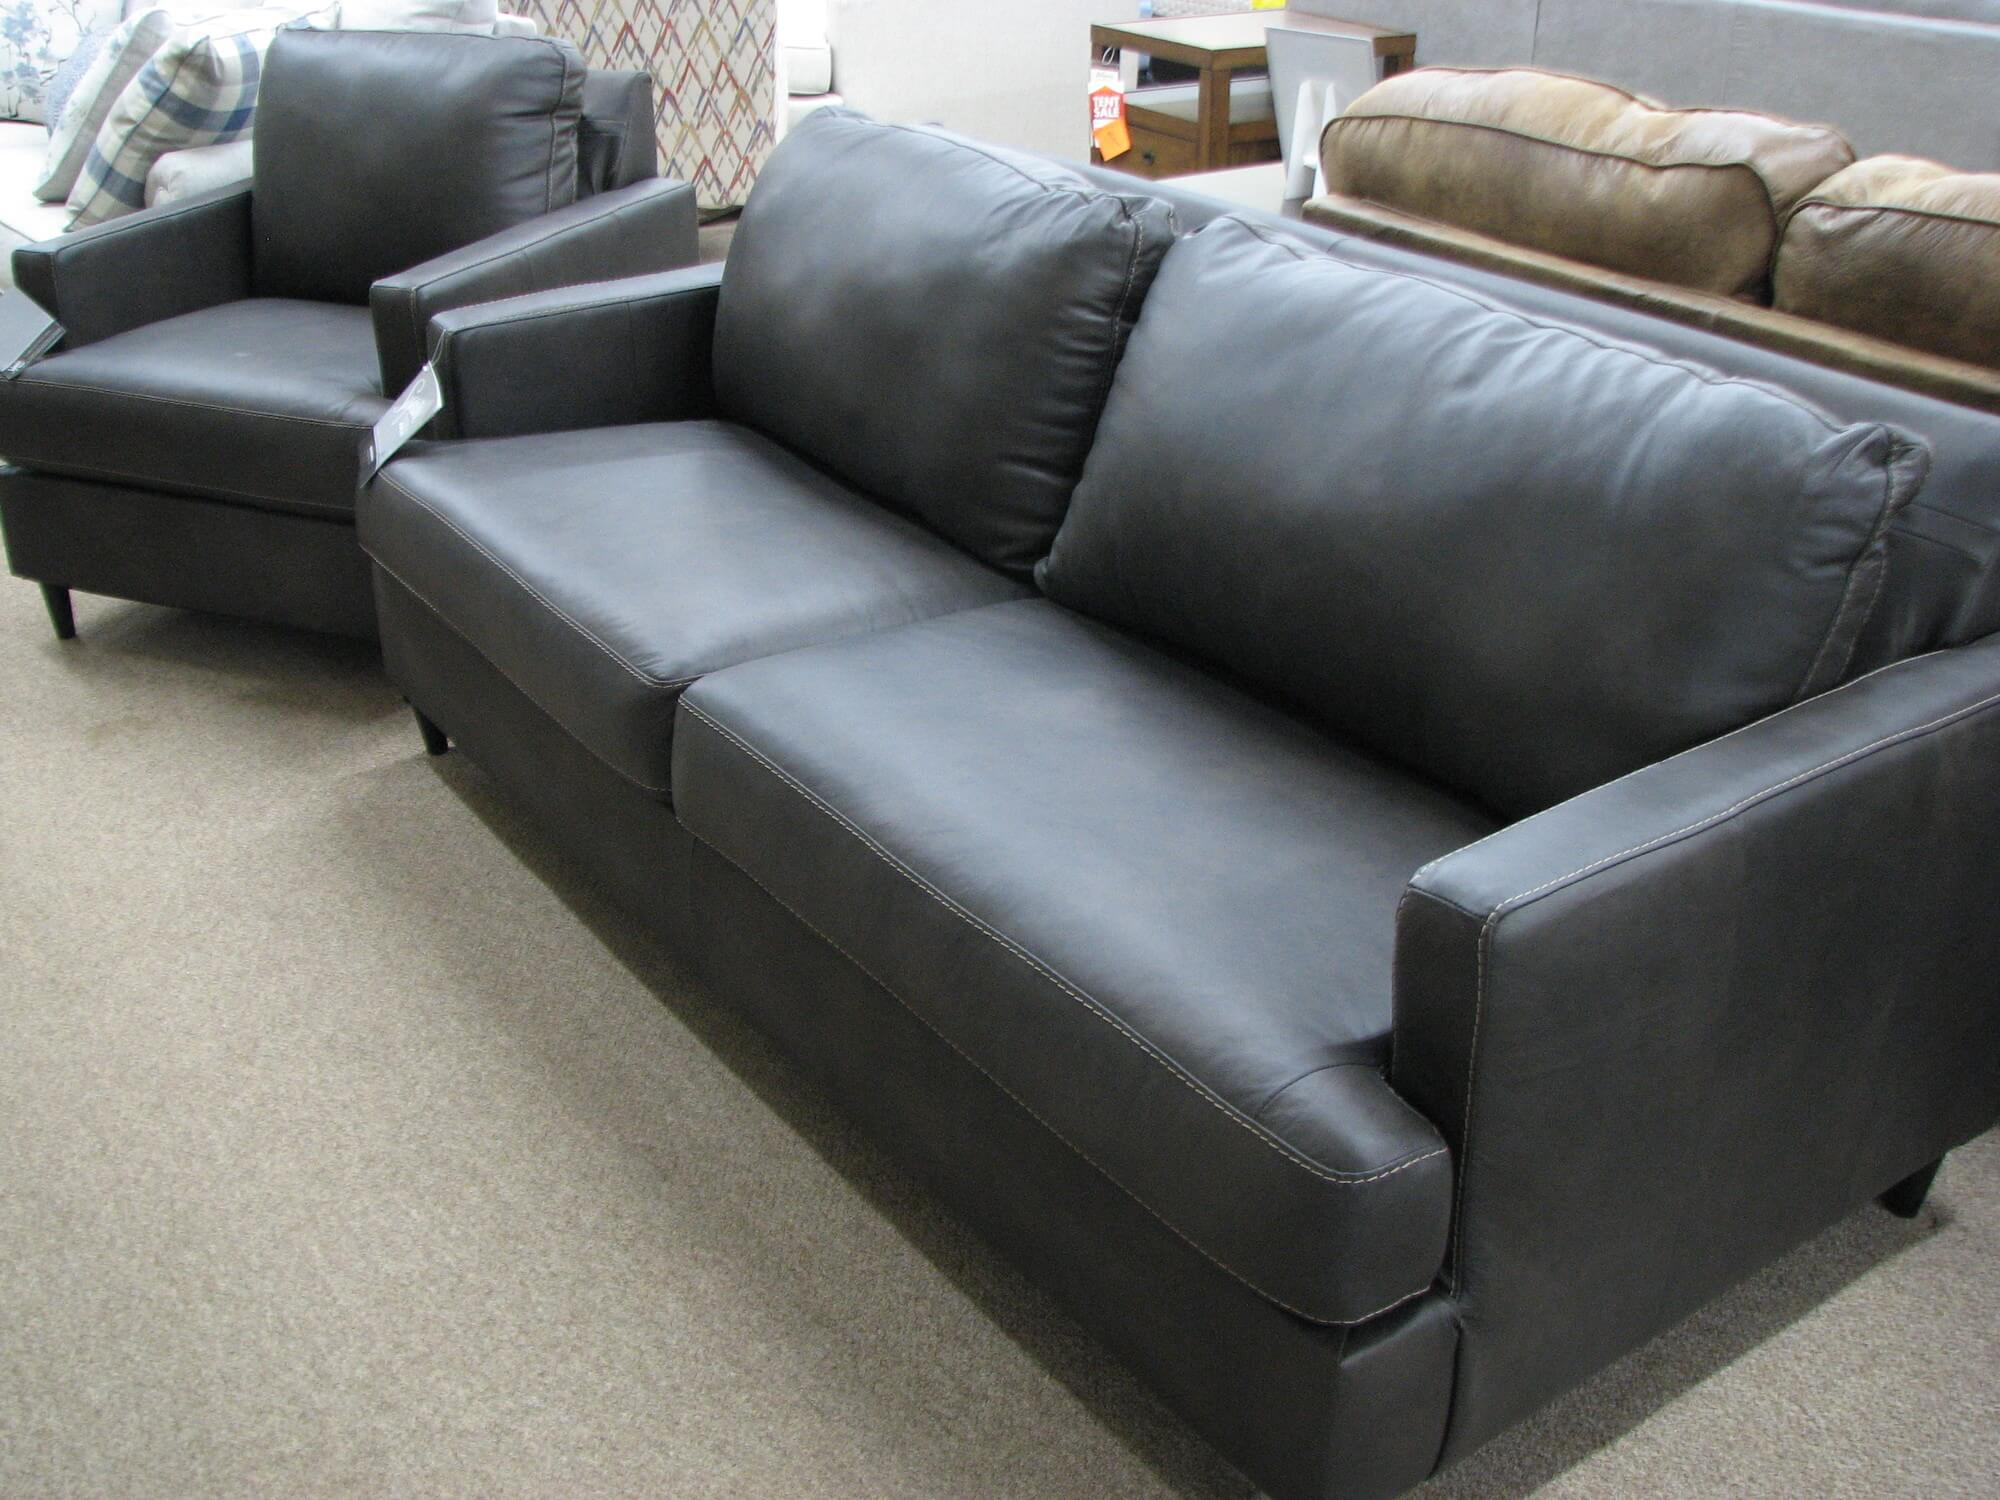 Ashley Charcoal Leather/Vinyl Sofa and Chair